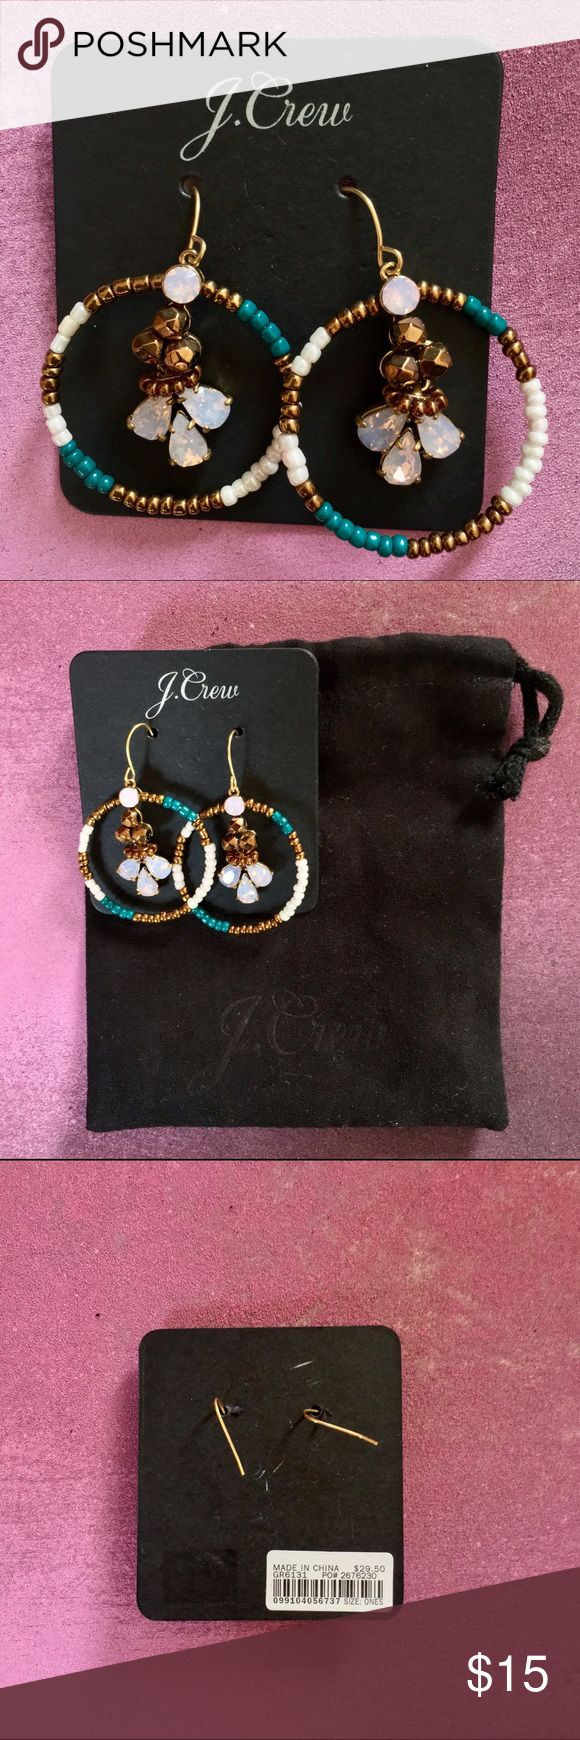 J. Crew Moonstone Crystal Bead Earrings (NWT) Ear candy for all seasons! Brand new, J. Crew earrings featuring sparkling moonstone-like crystals and delicate gold, turquoise, and pearl white beads in an intricate design. Comes with J. Crew jewelry duster bag. Originally purchased at a J. Crew retail store (not outlet). For pierced ears. J. Crew Jewelry Earrings